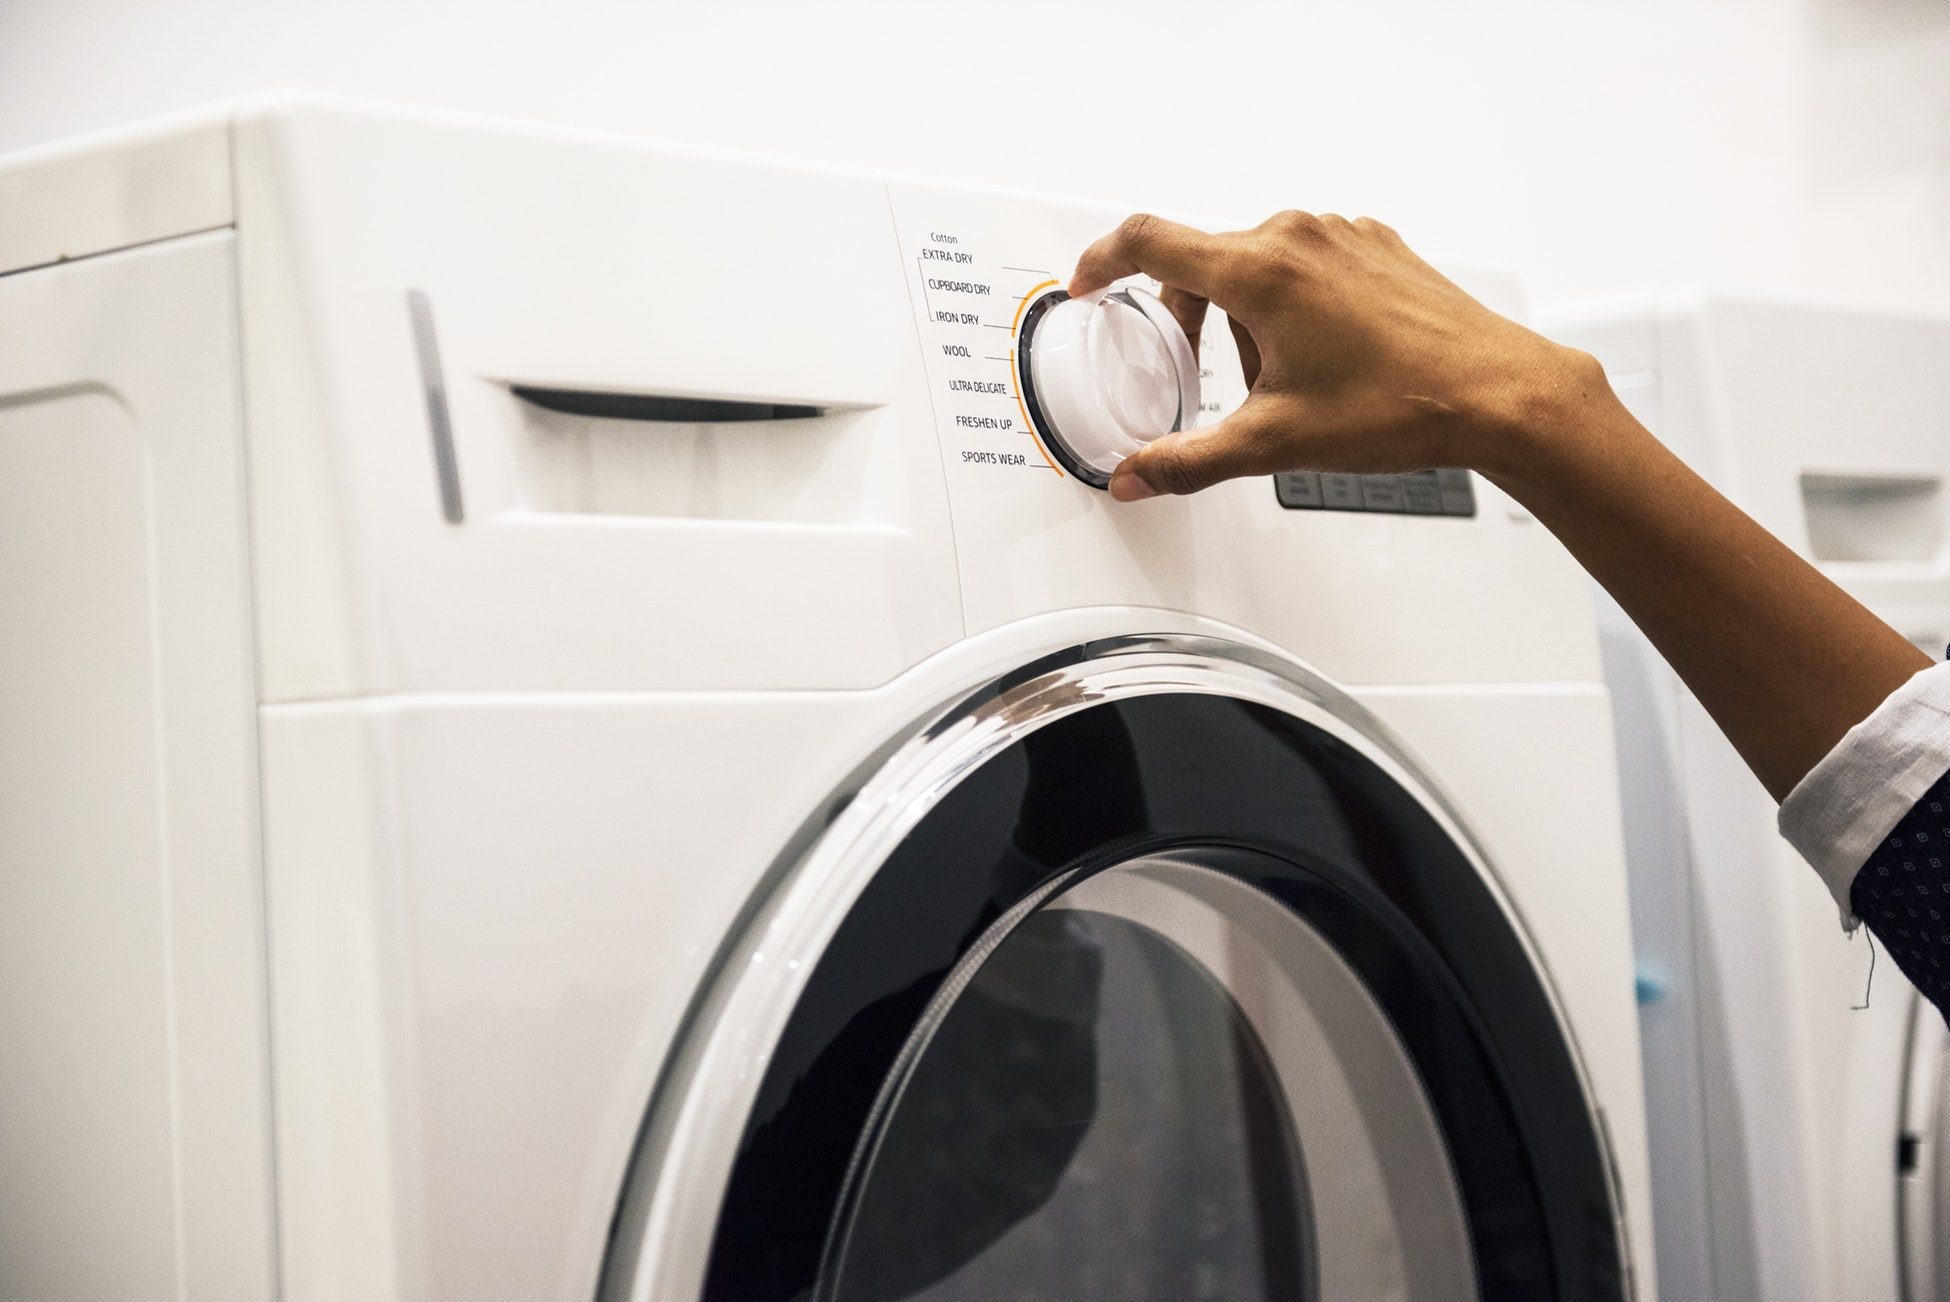 Why do landlords disallow using washing machines in the rental properties